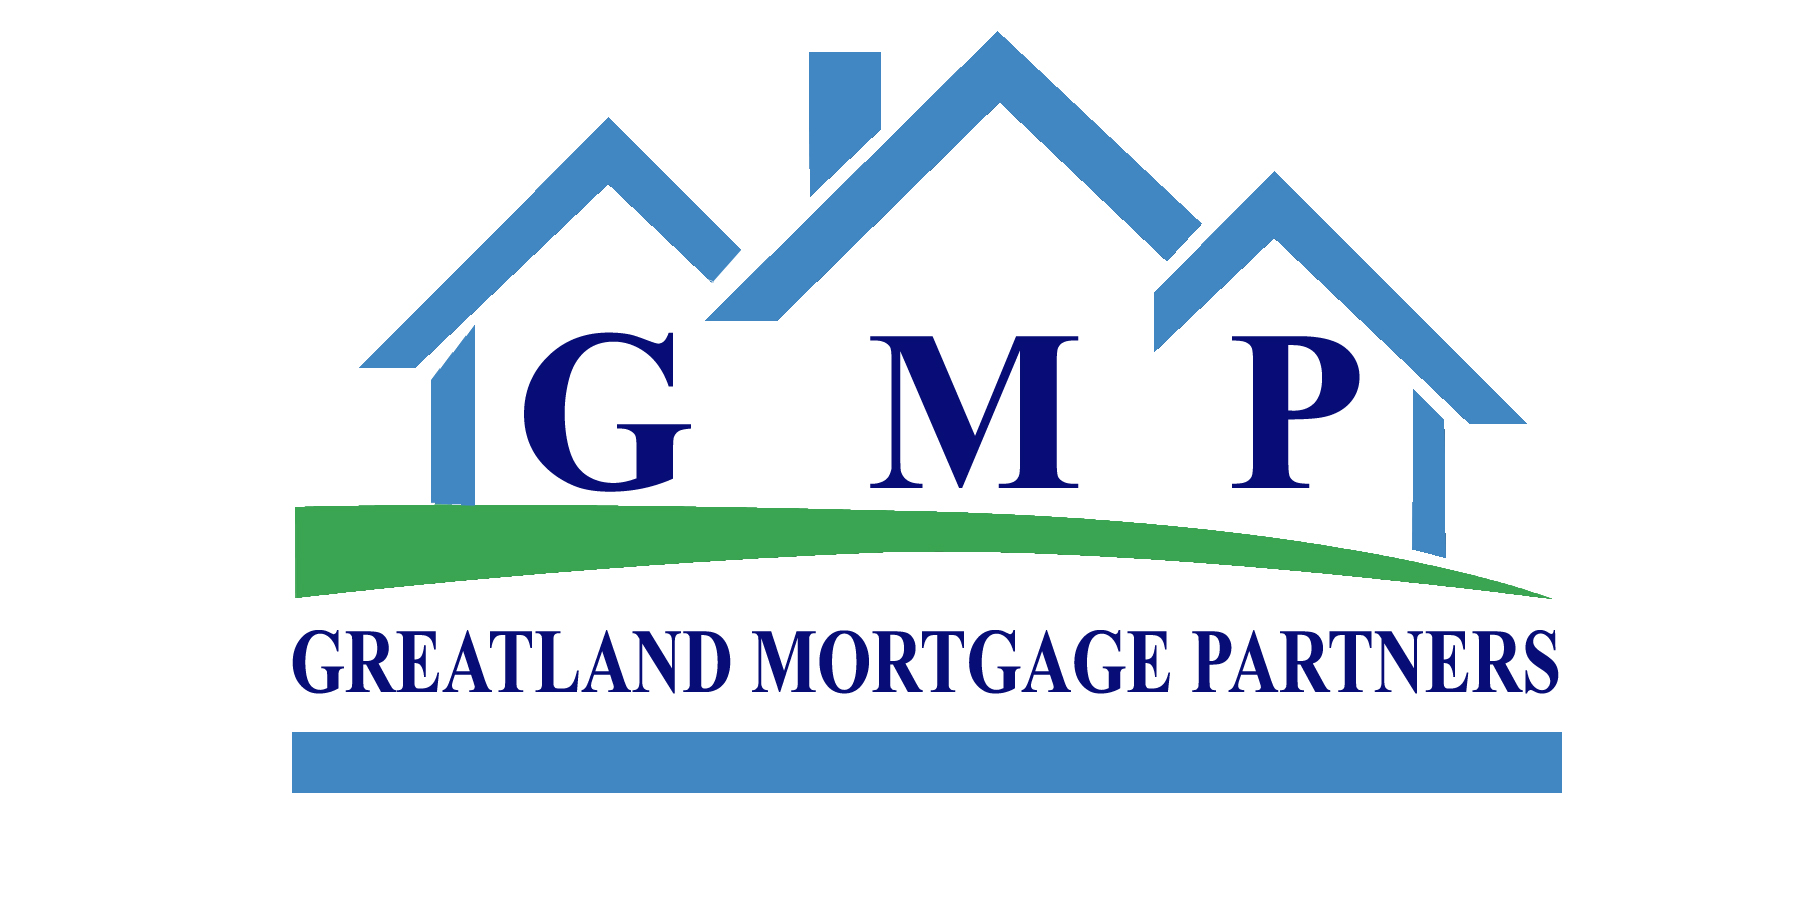 Greatland Mortgage Partners